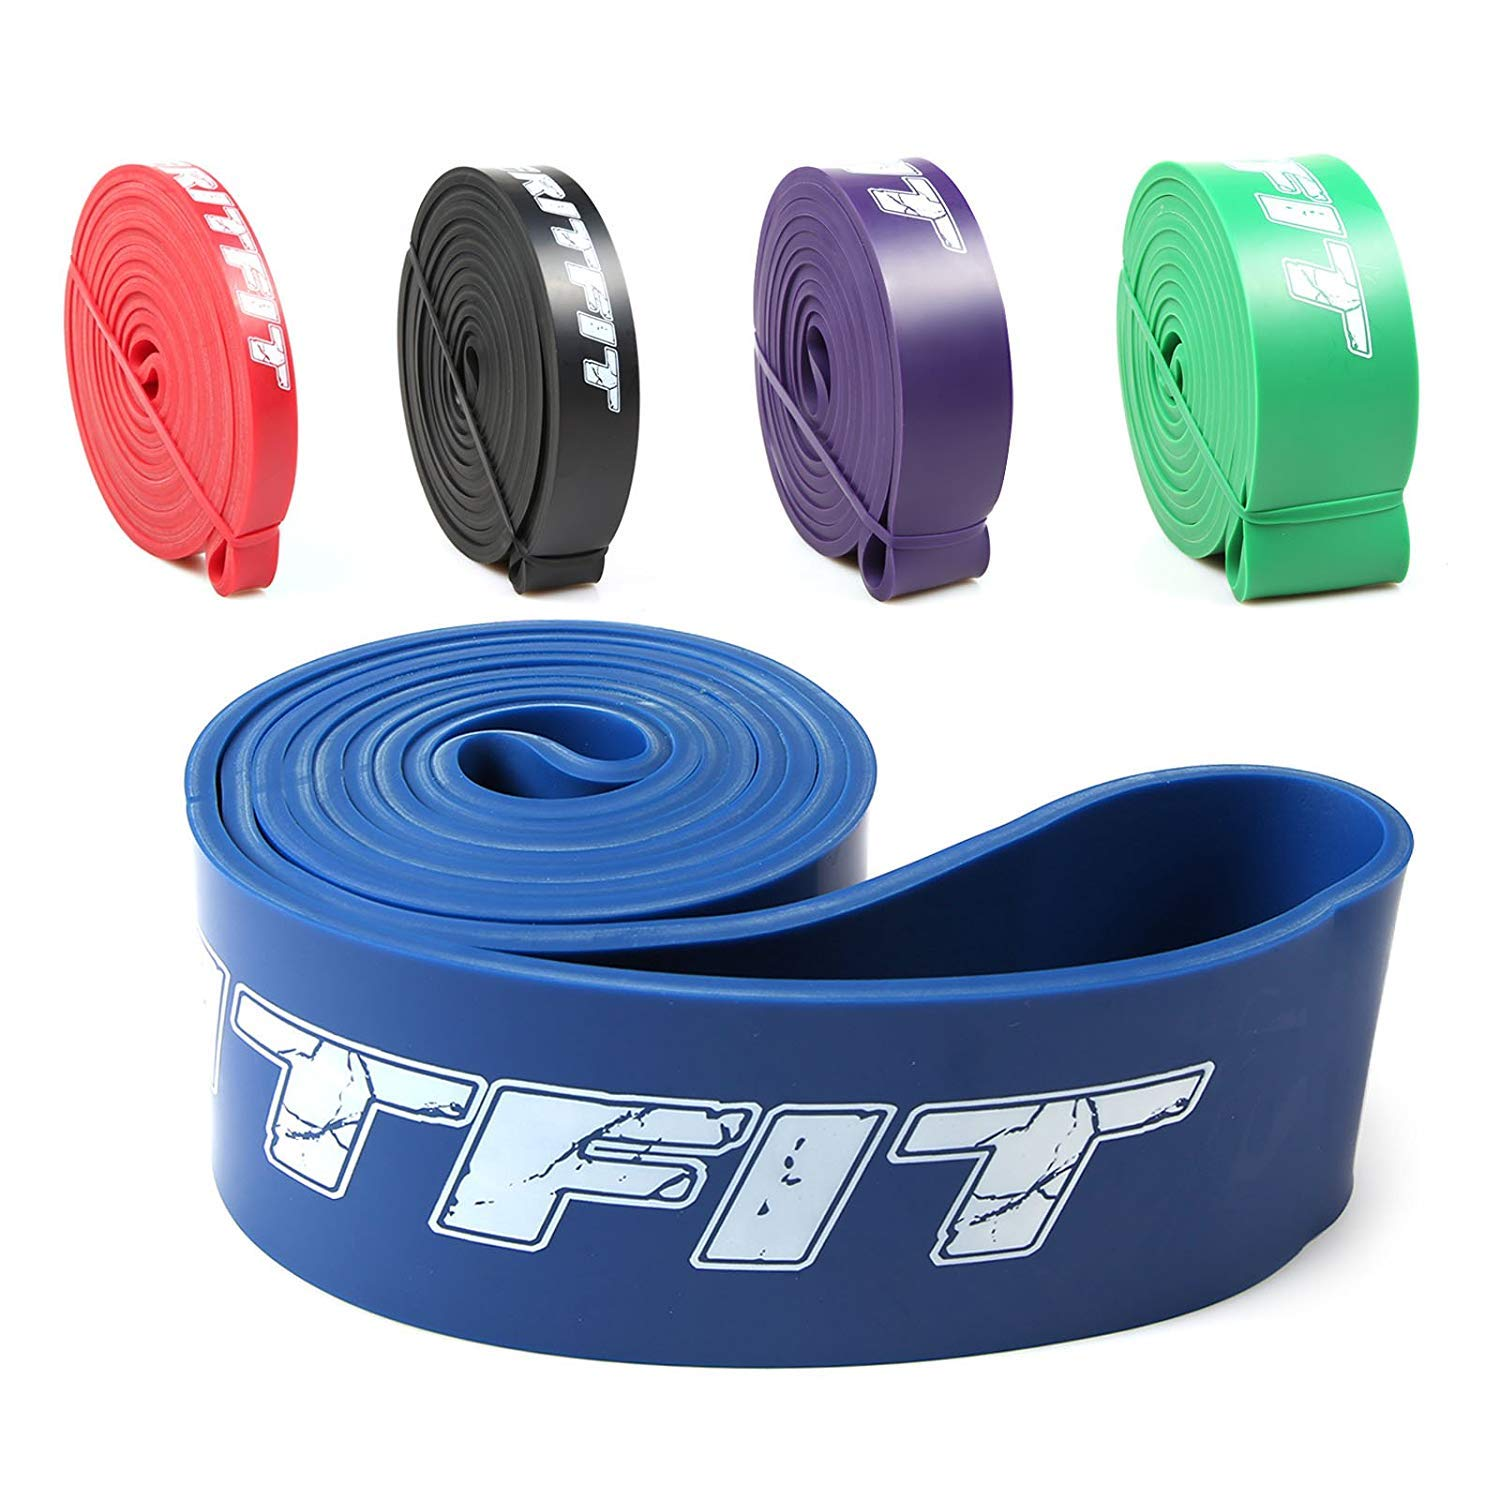 RitFit 41'' Pull Up Assist Band - Great for Pull-up Assistance, Resistance Exercise, Mobility, Stretch, Powerlifting Lowest Price - Starter e-Guide Included